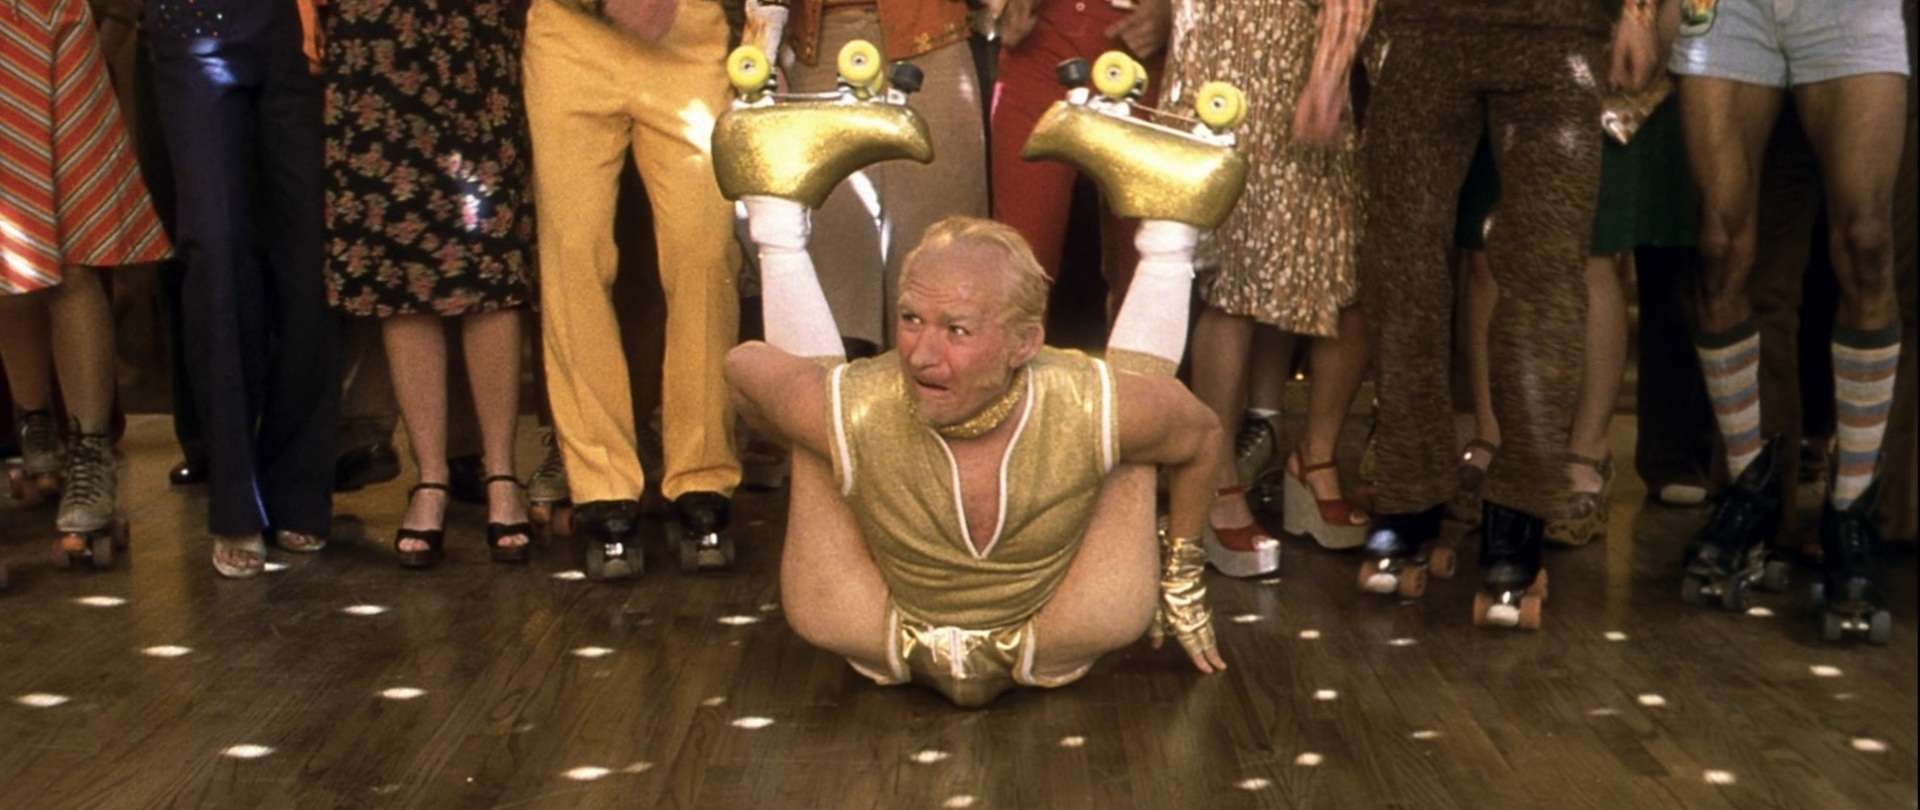 an analysis of last seen in austin powers in goldmember Such is the case in austin powers in goldmember, in terms of both its plot as well as the film itself regarding its status as a sequel as for the cast, crew and parent studio, expectations are high for apiii since the 2nd film, austin powers: the spy who shagged me - released in 1999 - out grossed the original 1997 picture by nearly $250.